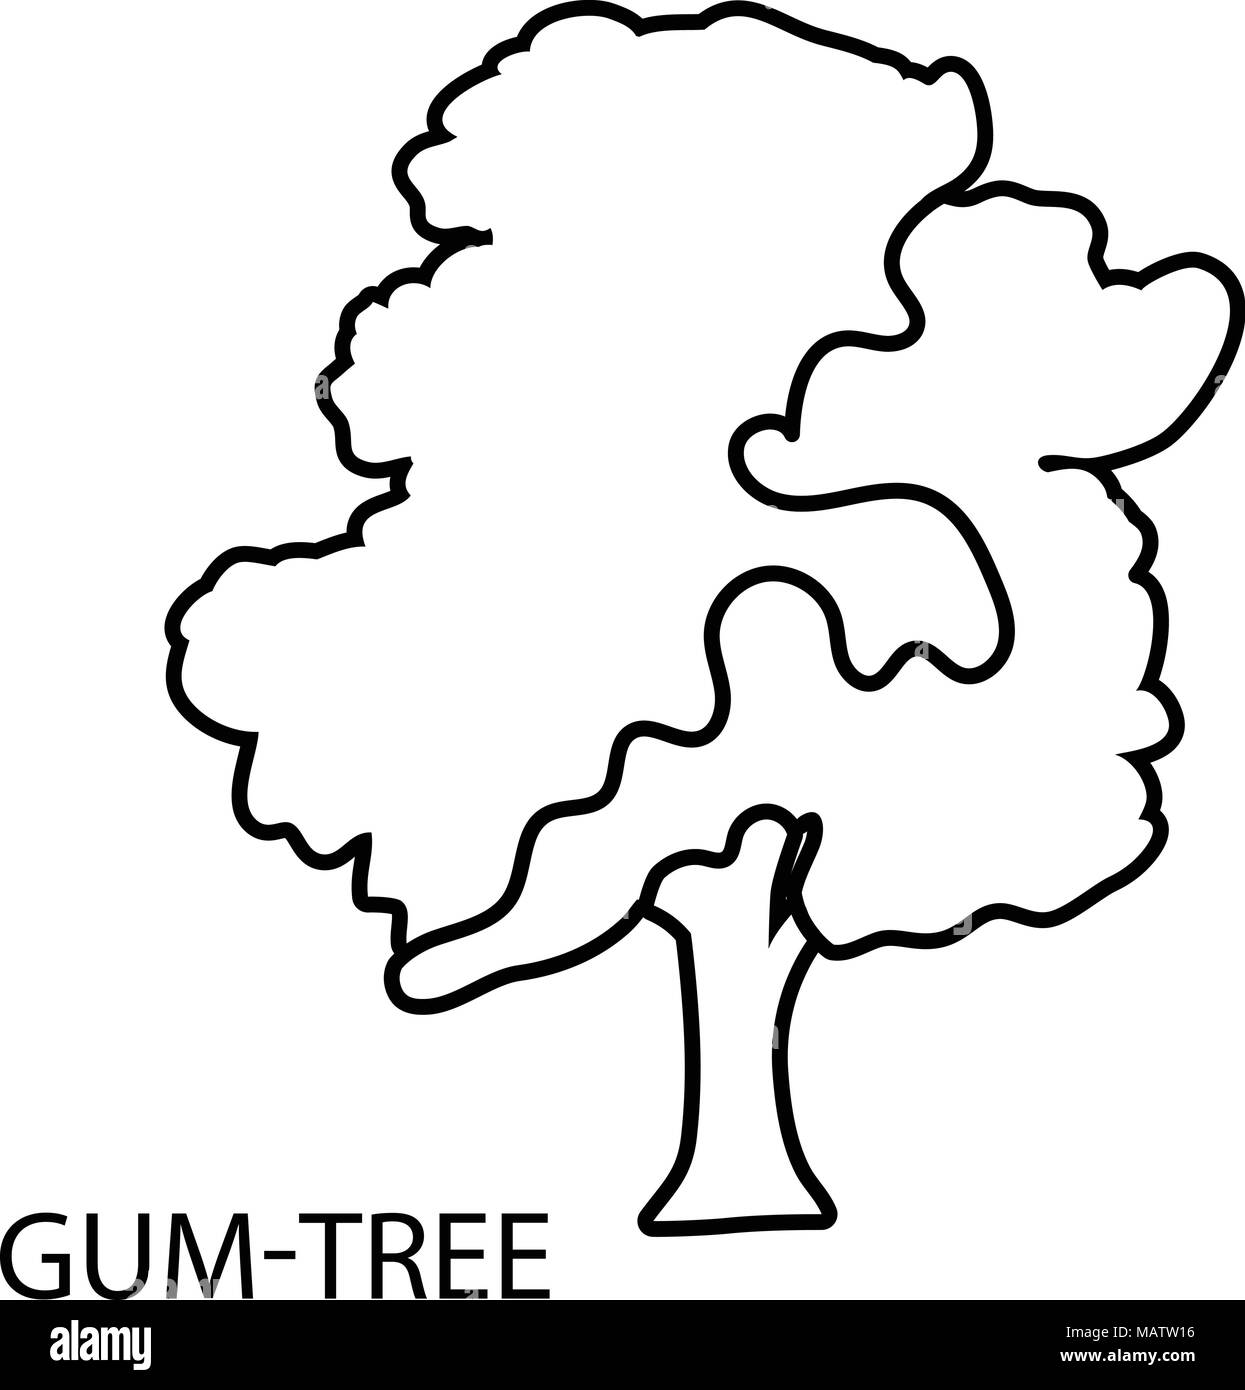 Gum tree icon, outline style Stock Vector